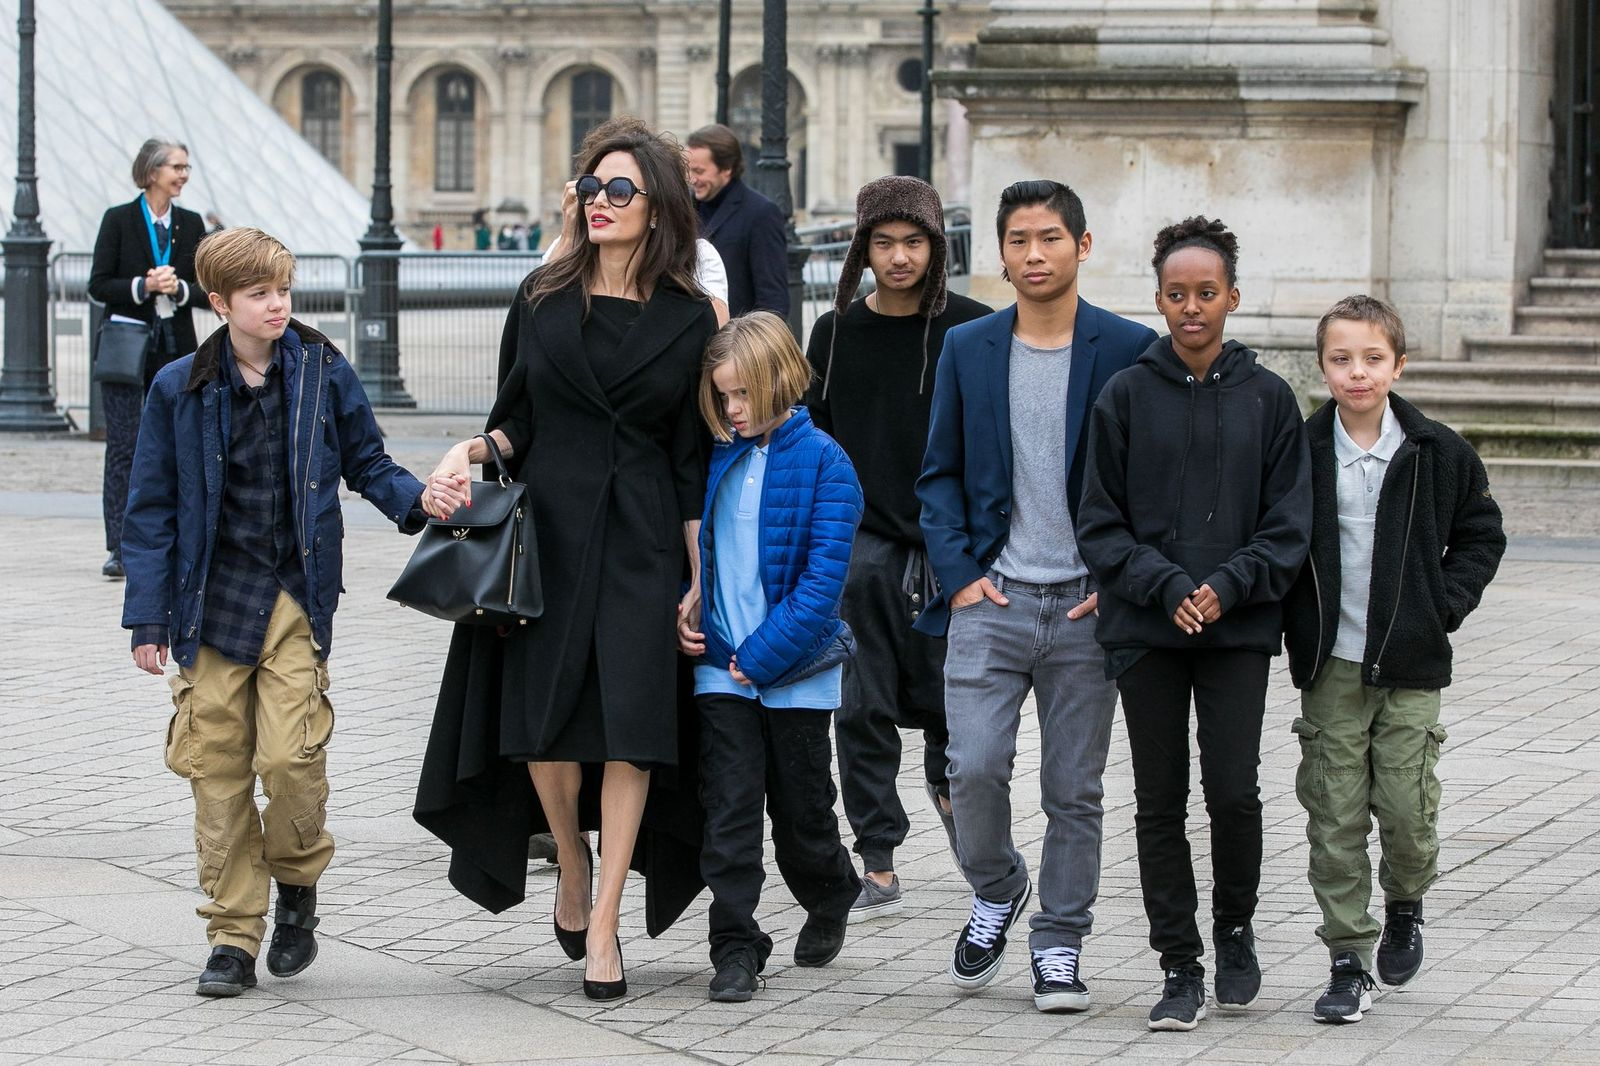 Angelina Jolie and her children Maddox, Shiloh, Vivienne, Knox, Zahara, and Pax Jolie-Pitt leaving the Louvre museum on January 30, 2018, in Paris, France | Photo: Marc Piasecki/GC Images/Getty Images